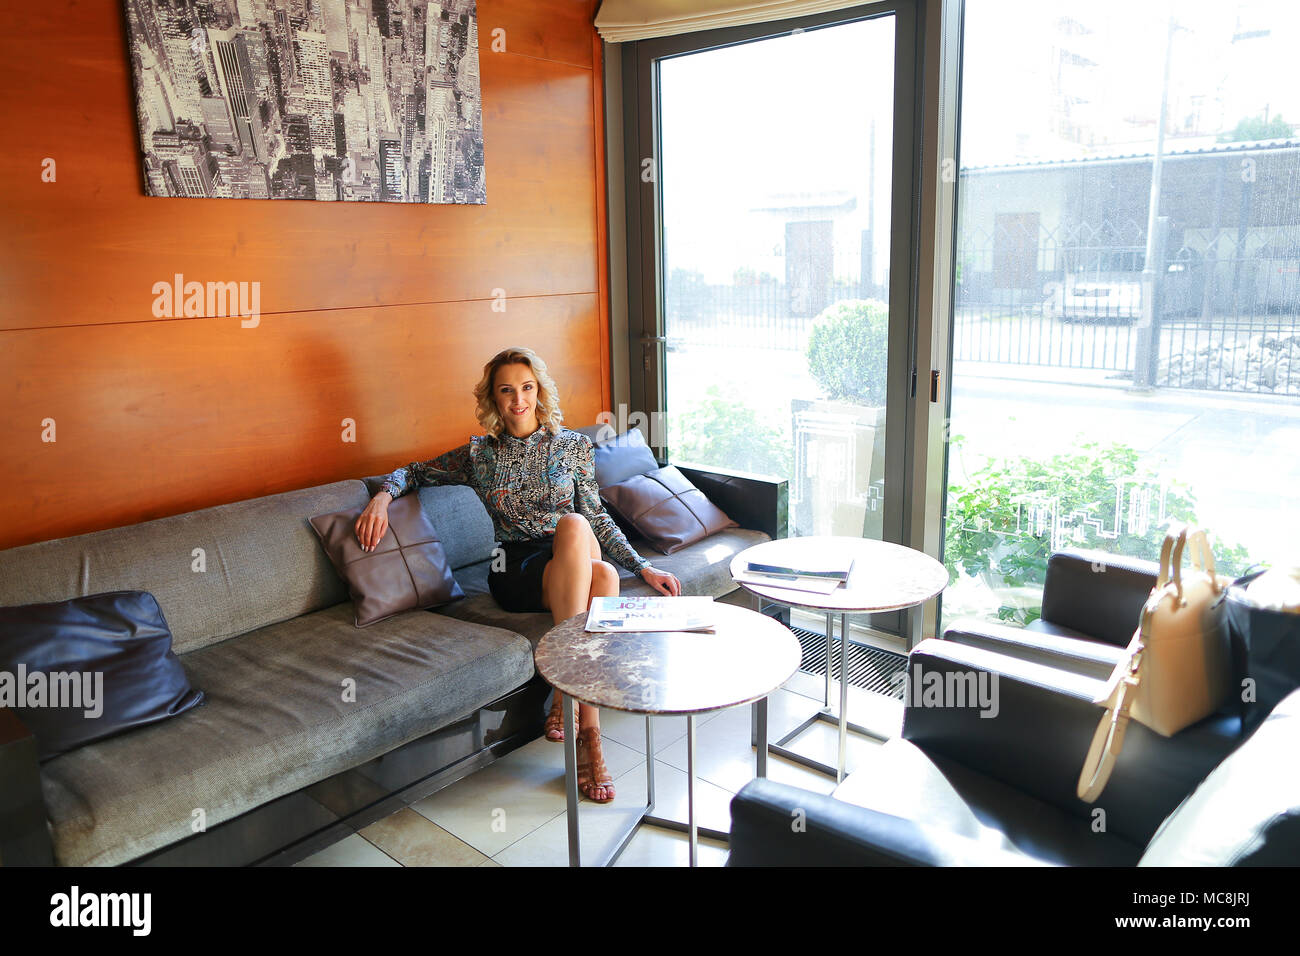 Woman Sitting On Sofa Near Window At Home Stock Photo 179669942 Alamy